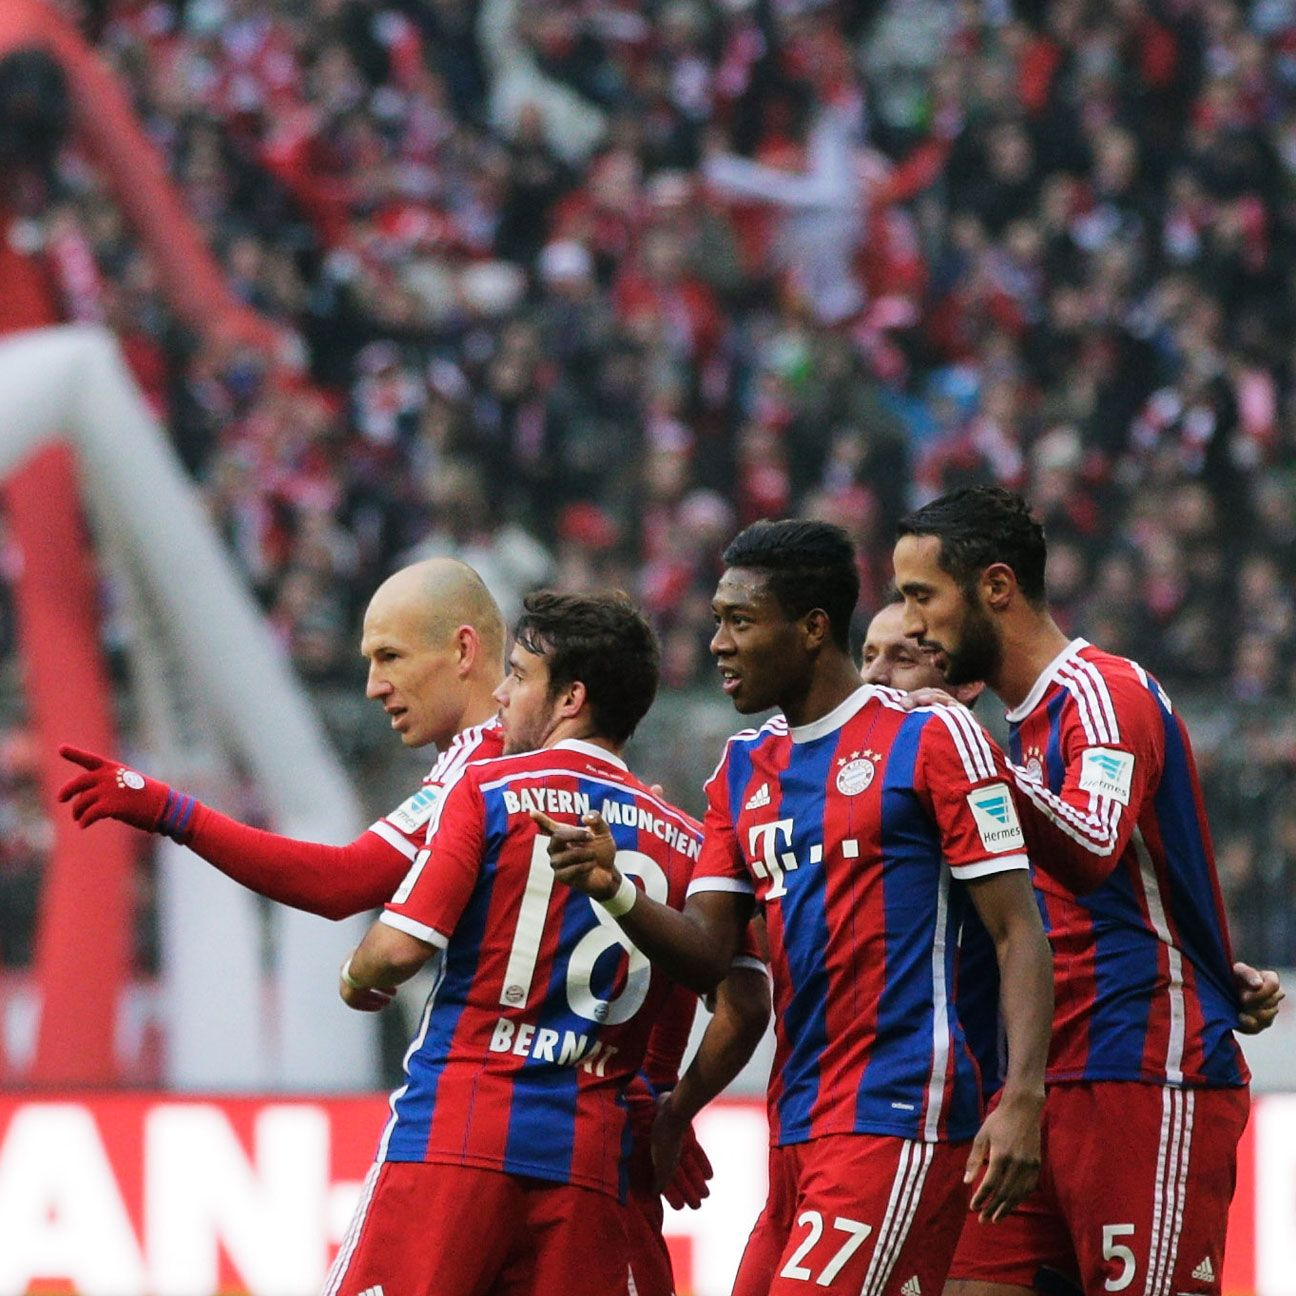 Bayern Munich head into their Tuesday clash with Shakhtar on the heels of a 8-0 walloping of Hamburg.